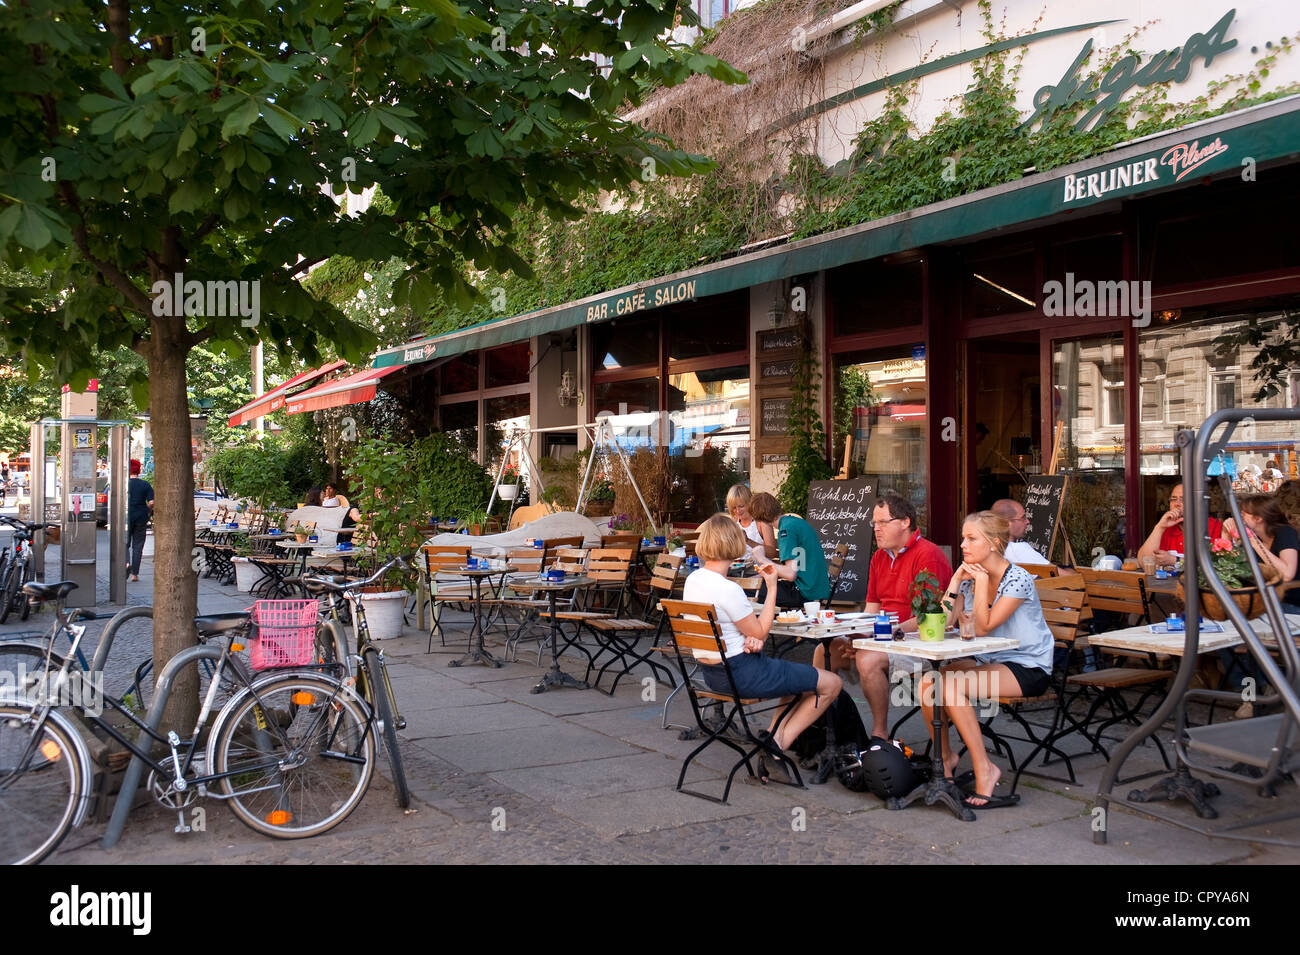 germany berlin prenzlauer berg district kastanienllee cafe stock photo royalty free image. Black Bedroom Furniture Sets. Home Design Ideas